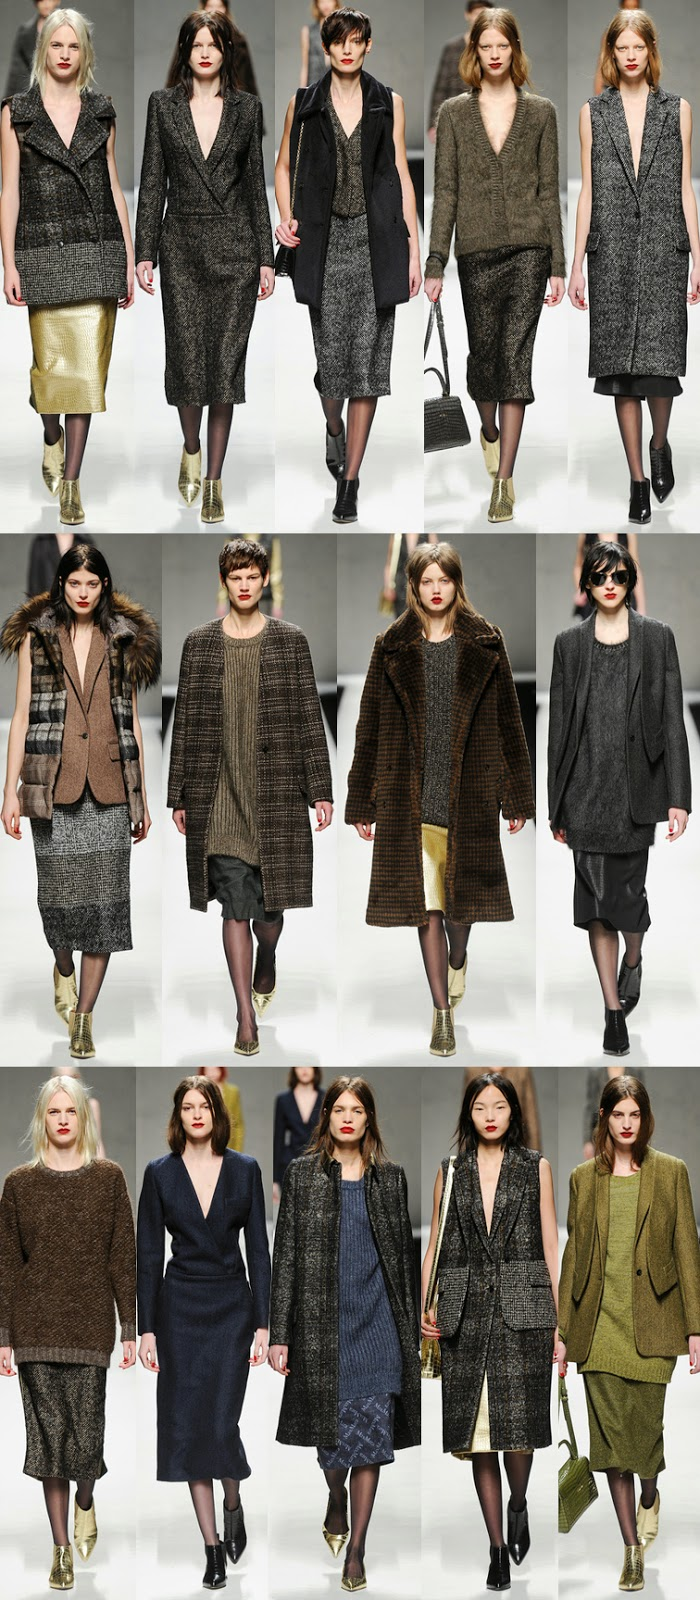 MaxMara fall winter 2014 runway collection, FW14, AW14, MFW, Milan fashion week